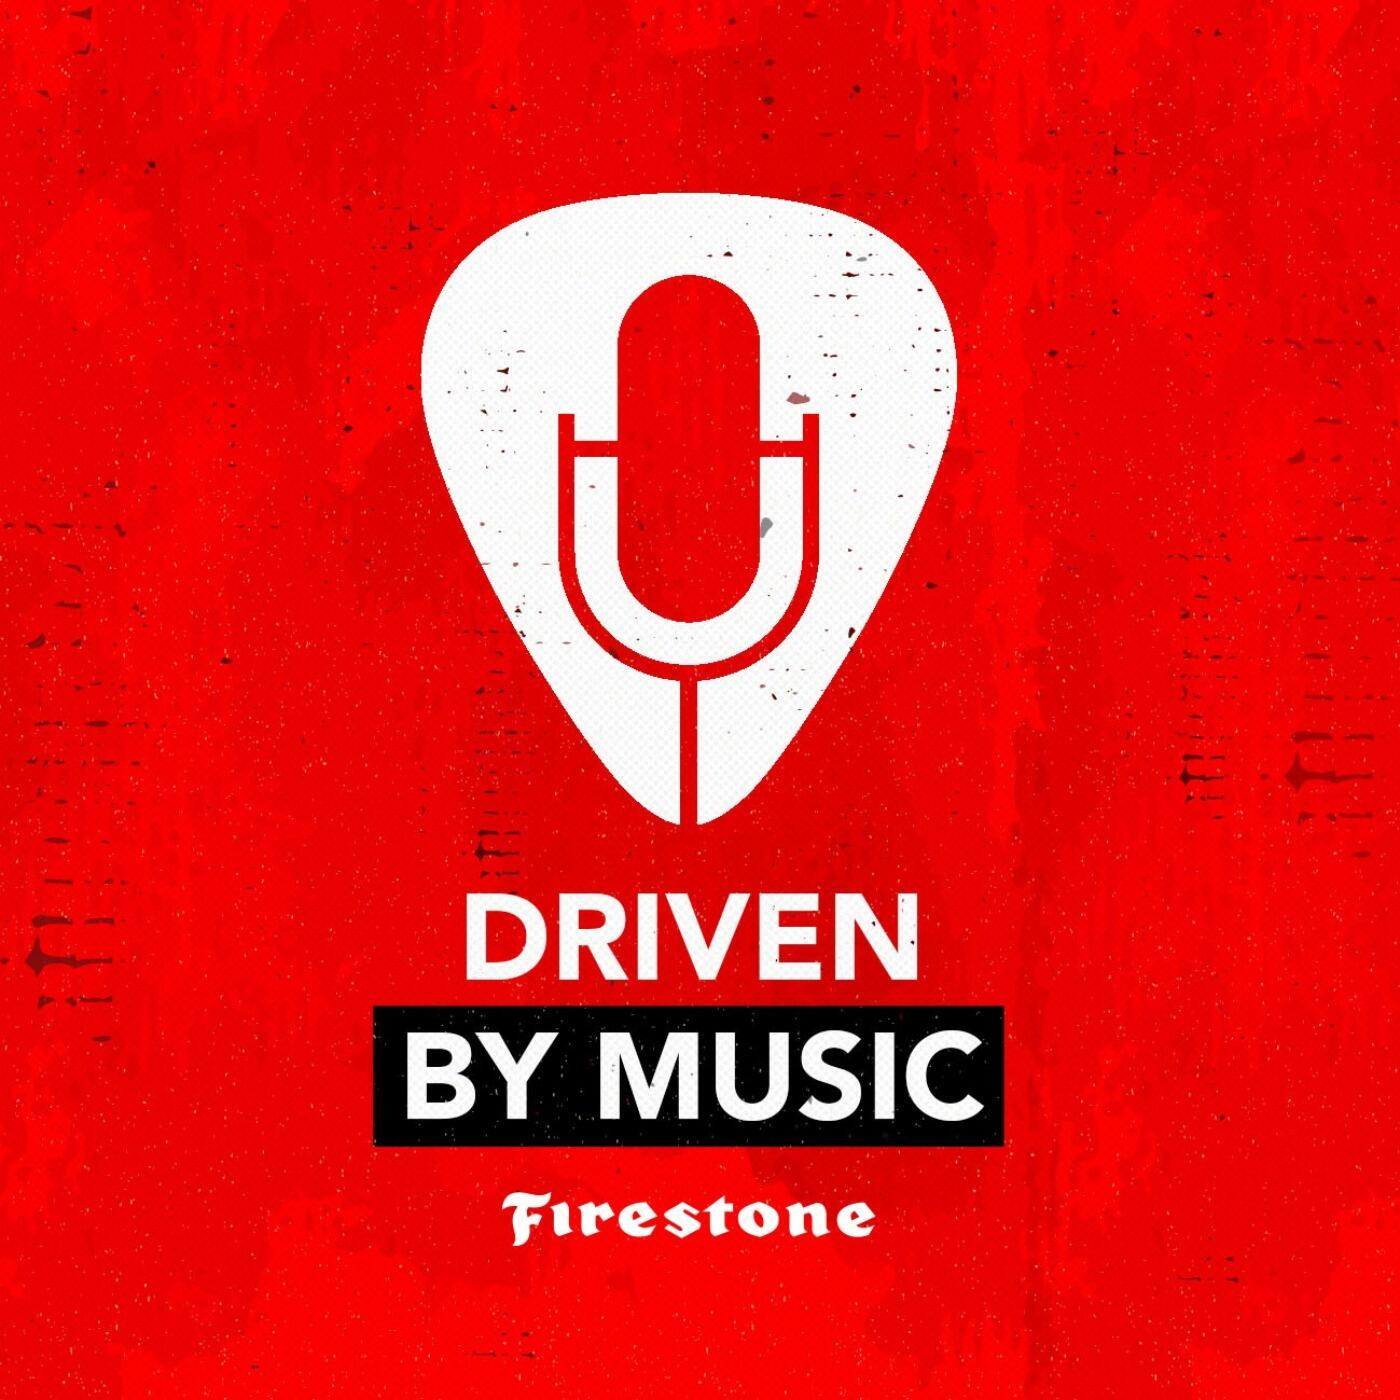 Driven by Music